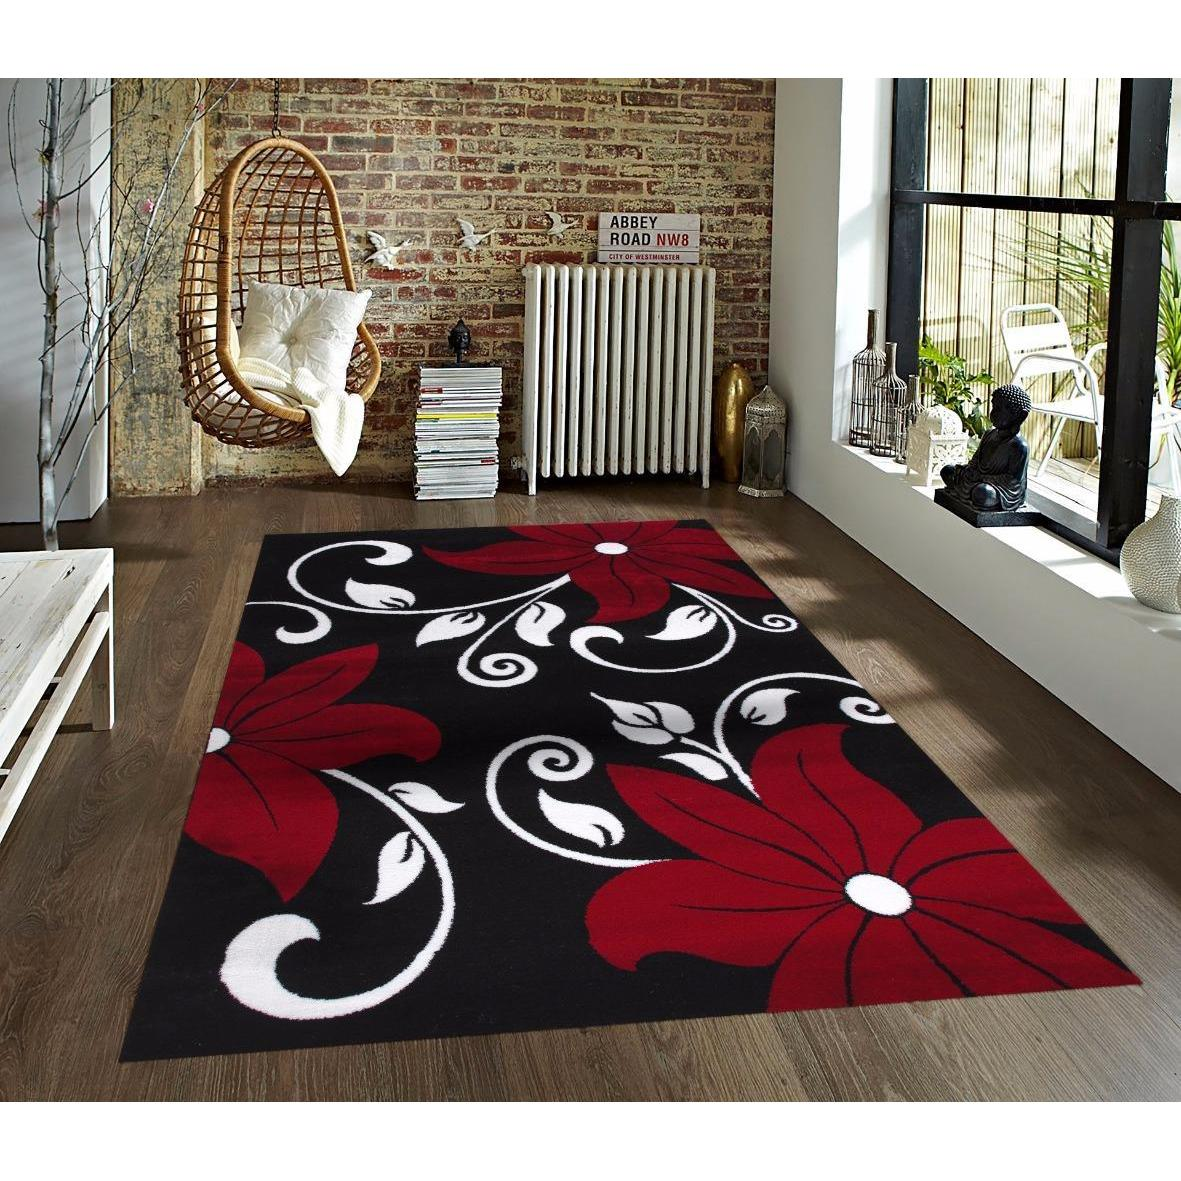 Shop Persian Rugs Modern Floral Black White Red Area Rug 7 10 X